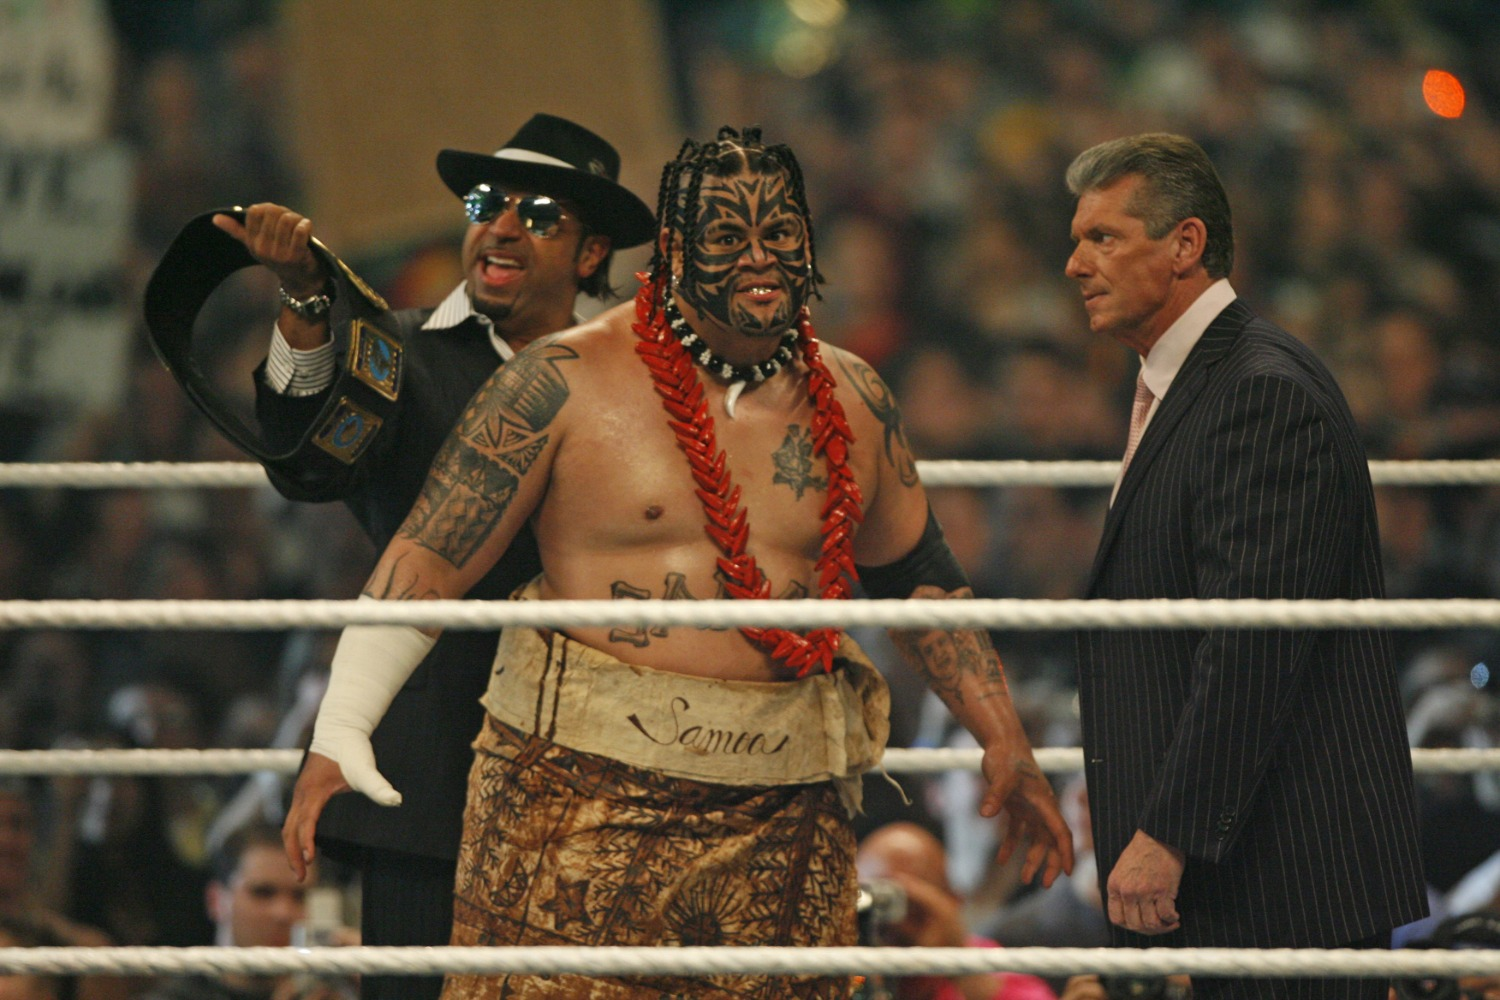 WWE superstar Umaga, who's real name was Edward Fatu, died in 2009 at the age of 36.